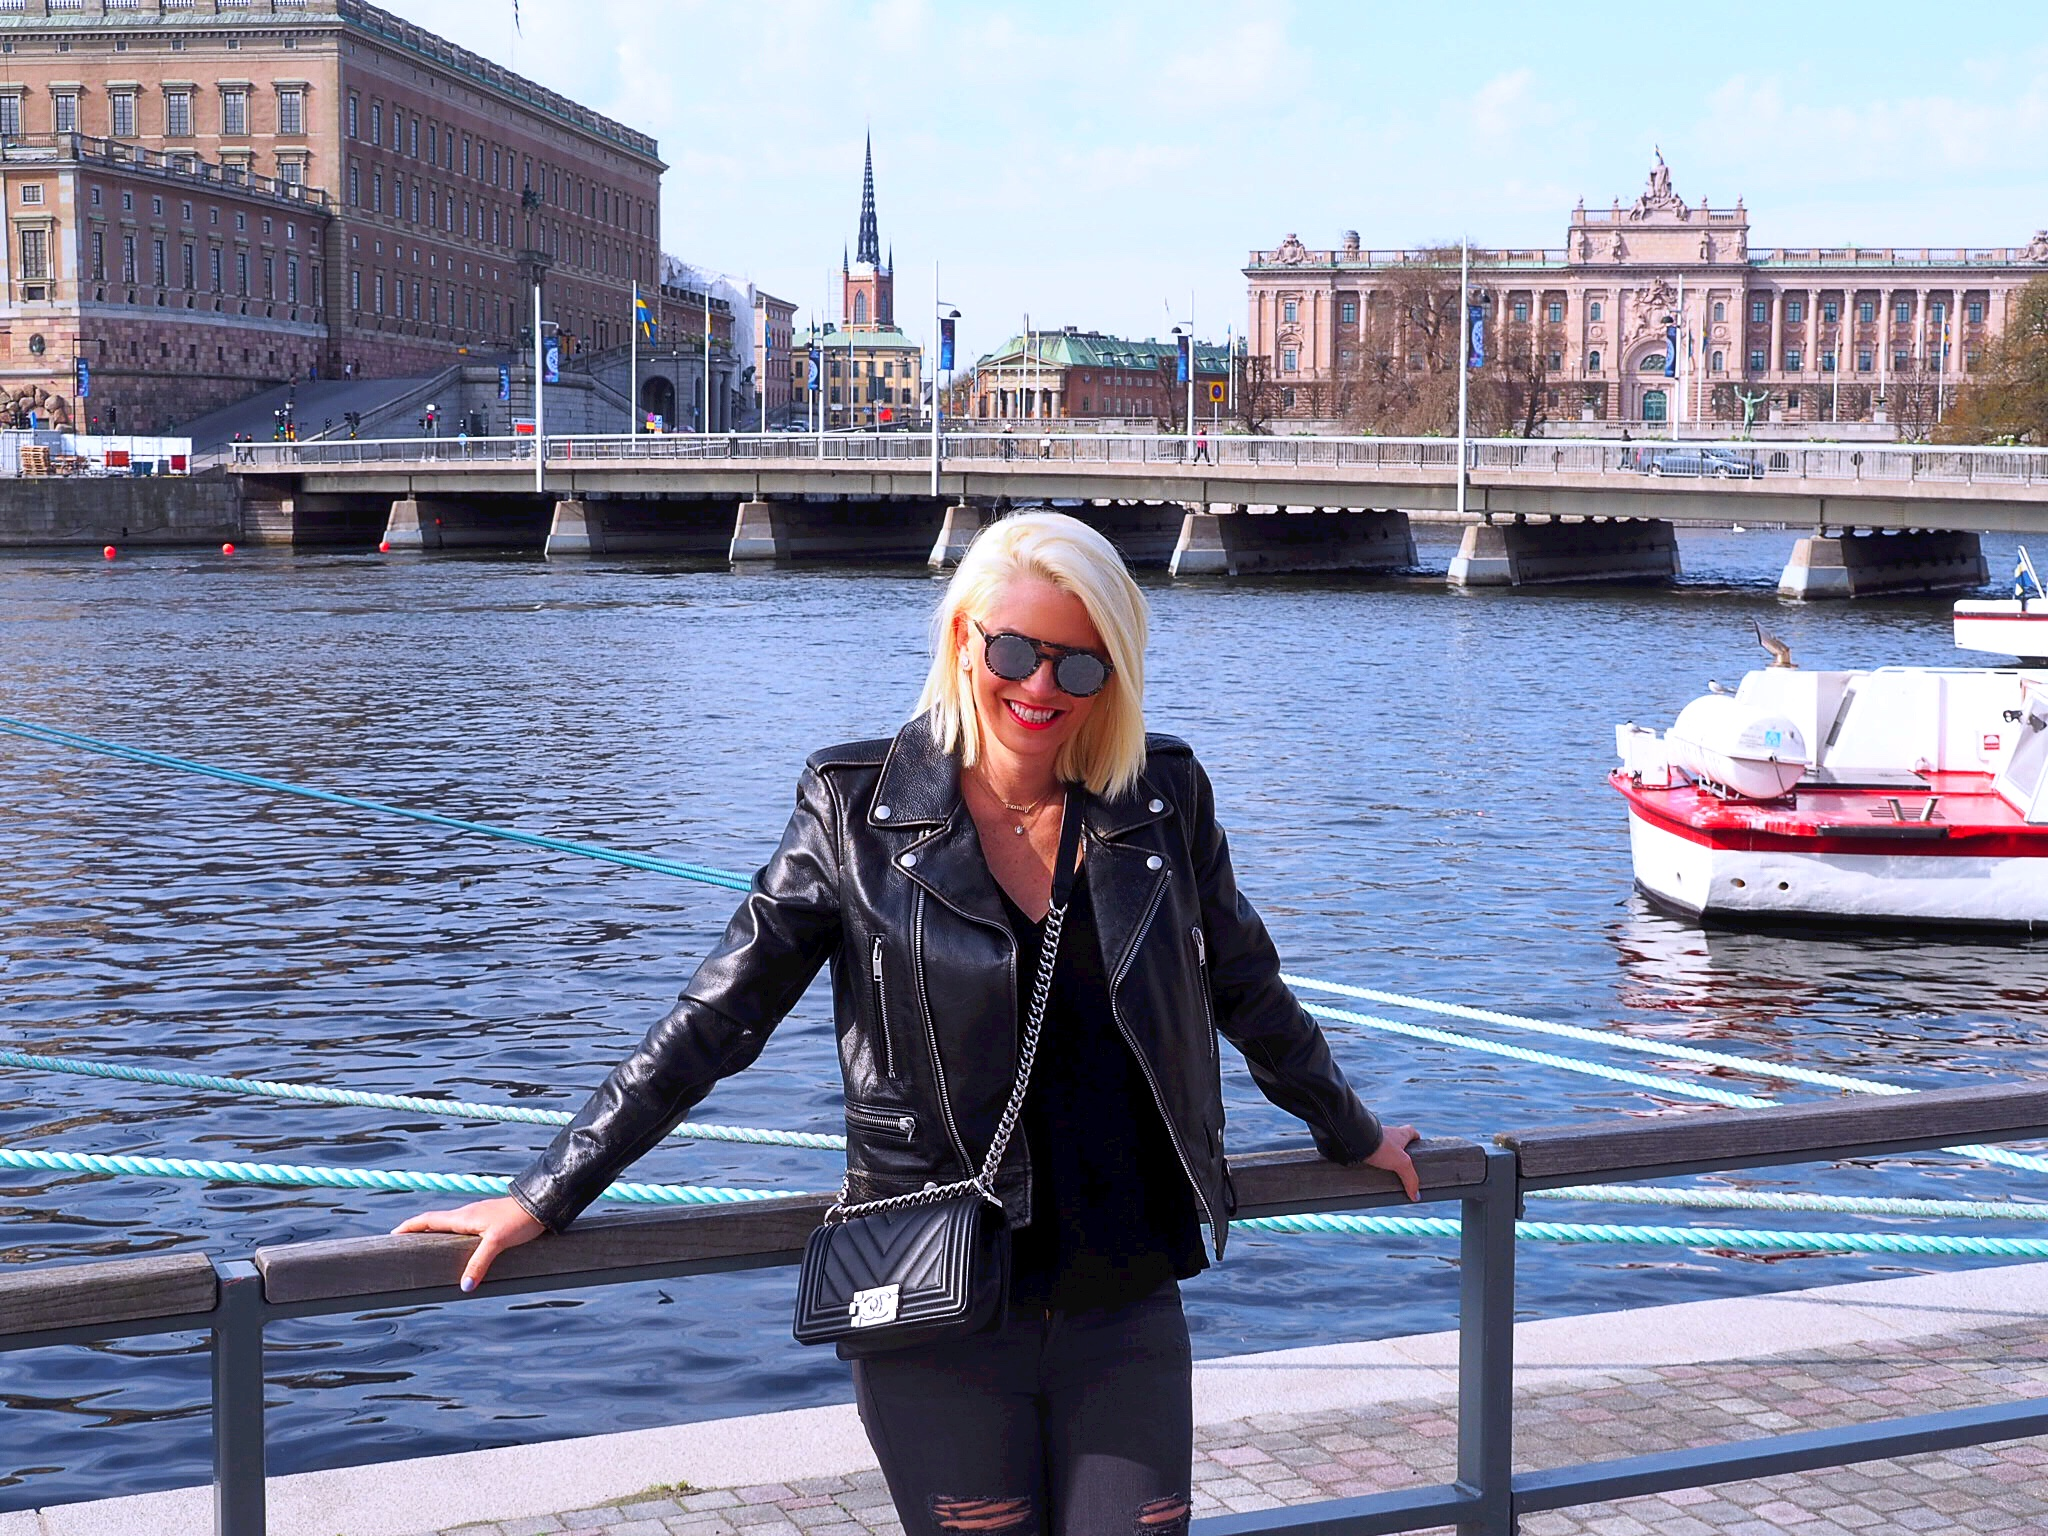 Dating in sweden as an american girl